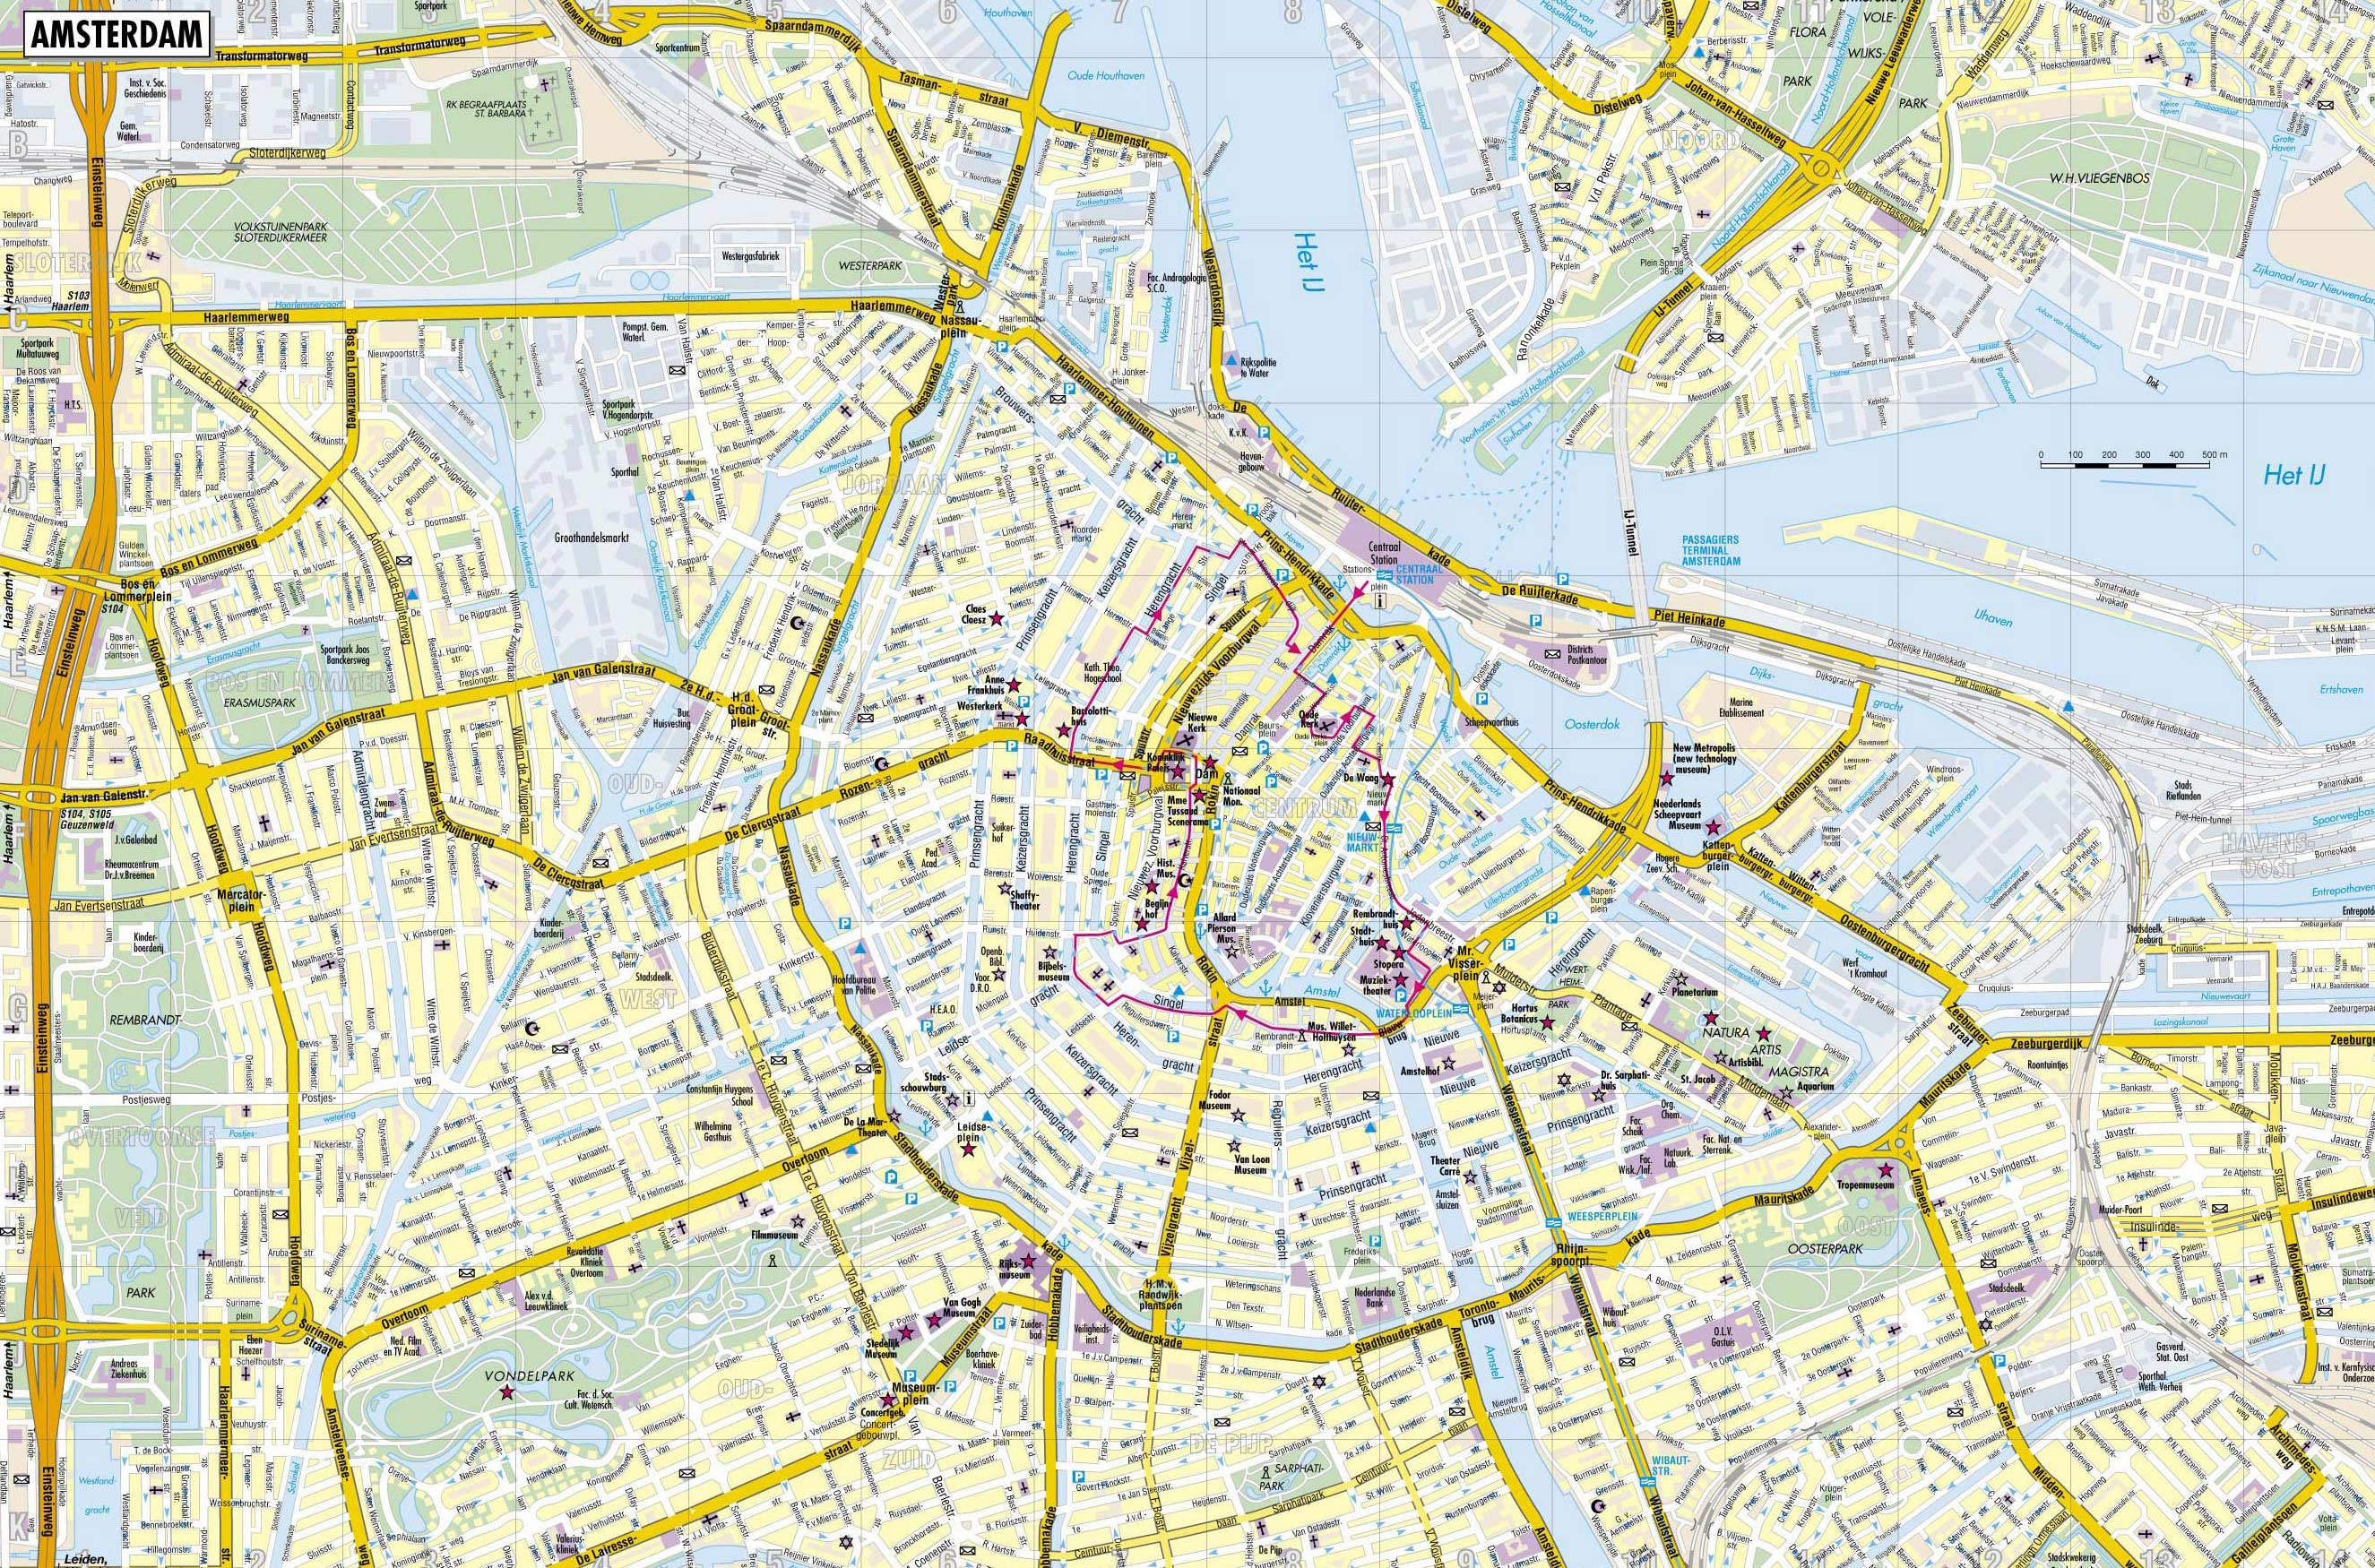 Download Free Maps Europe Backpacking – Amsterdam Travel Map